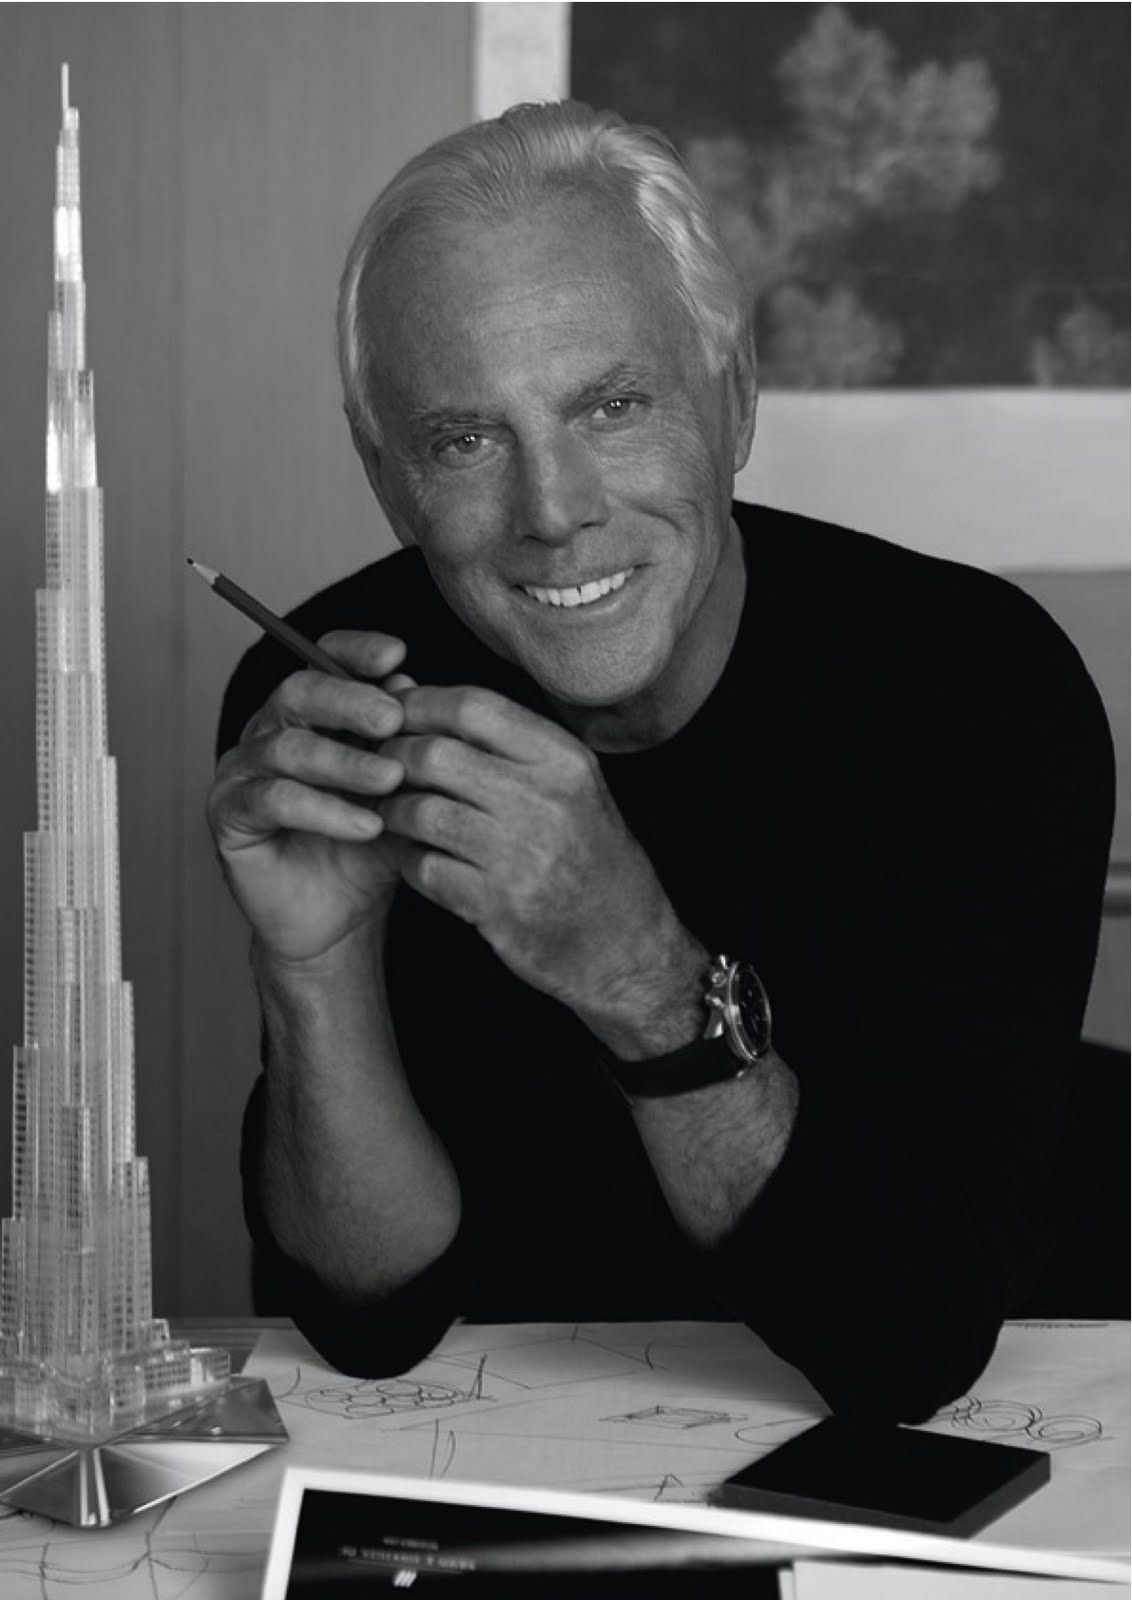 569a2572c46c1 Italian fashion designer Giorgio Armani has been ruling fashion world with  graceful outfits